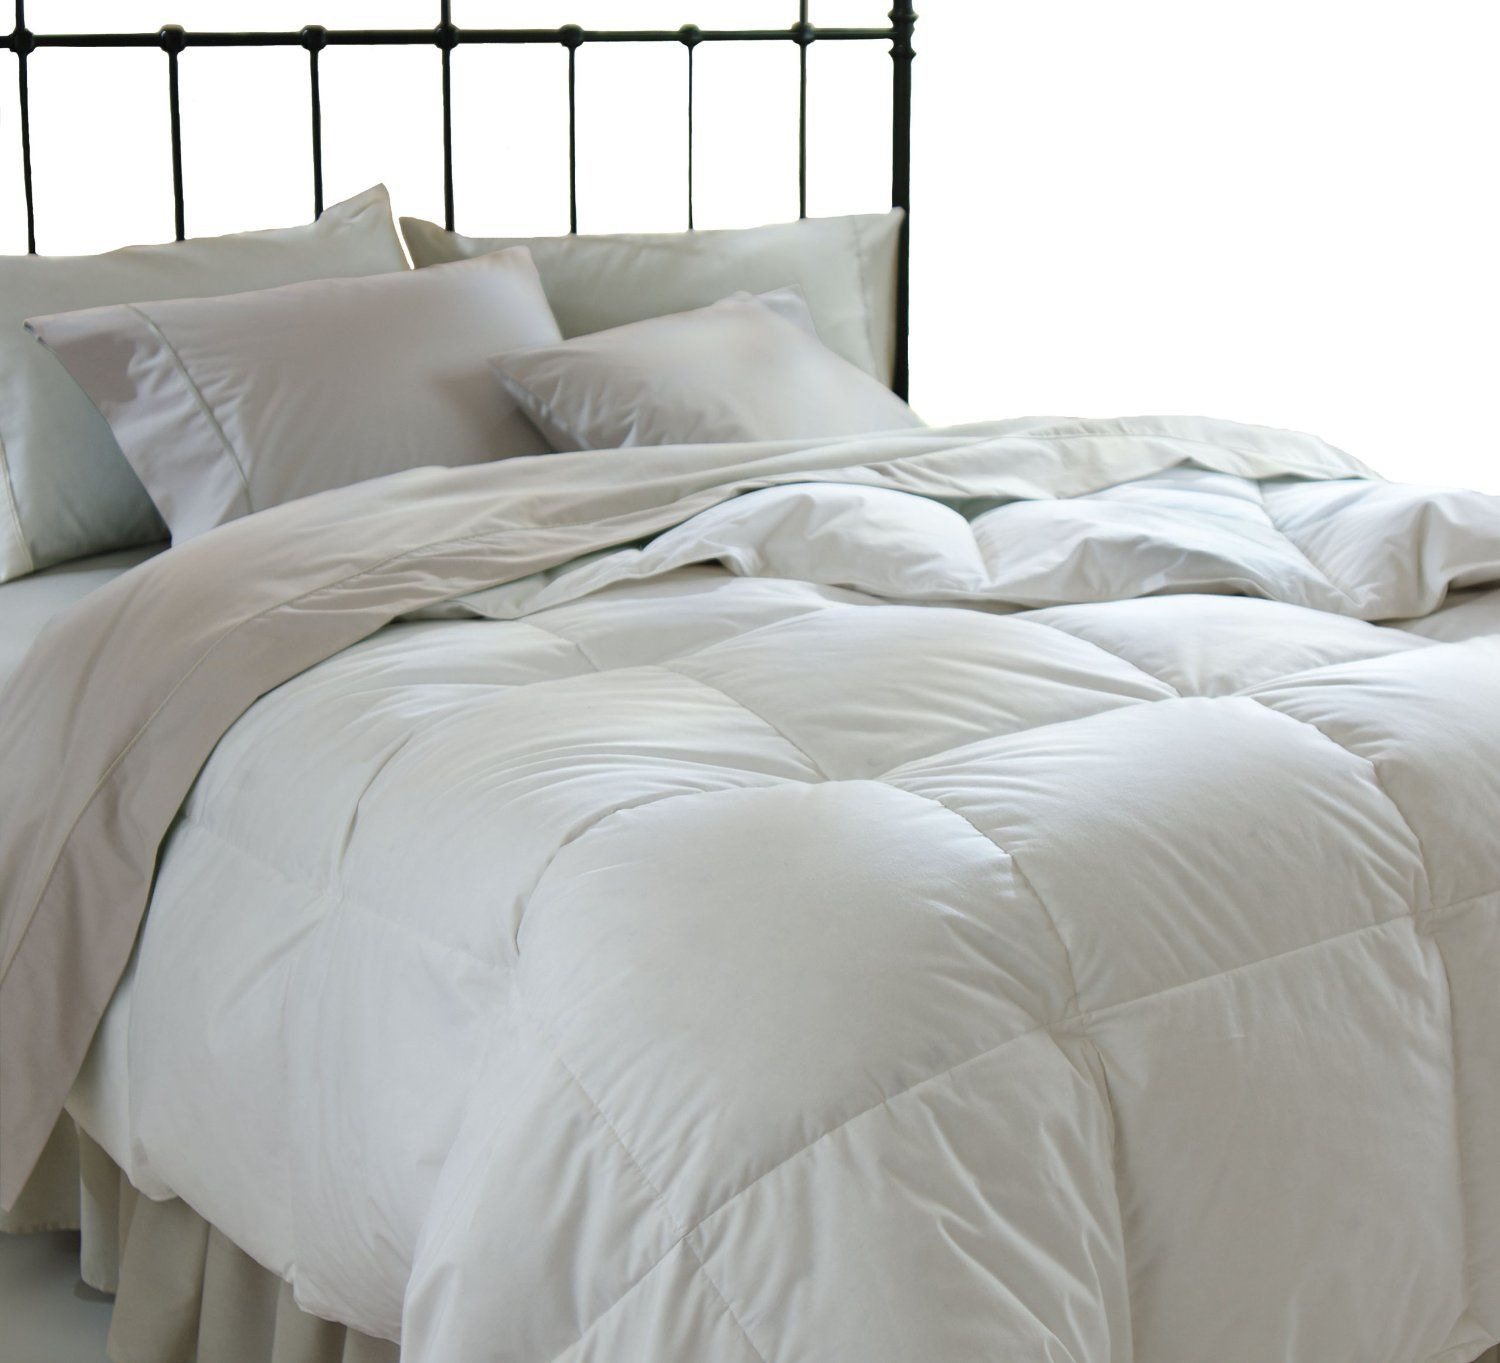 luxury down comforter provides medium warmth for yearround comfort filling with 750 fill king size